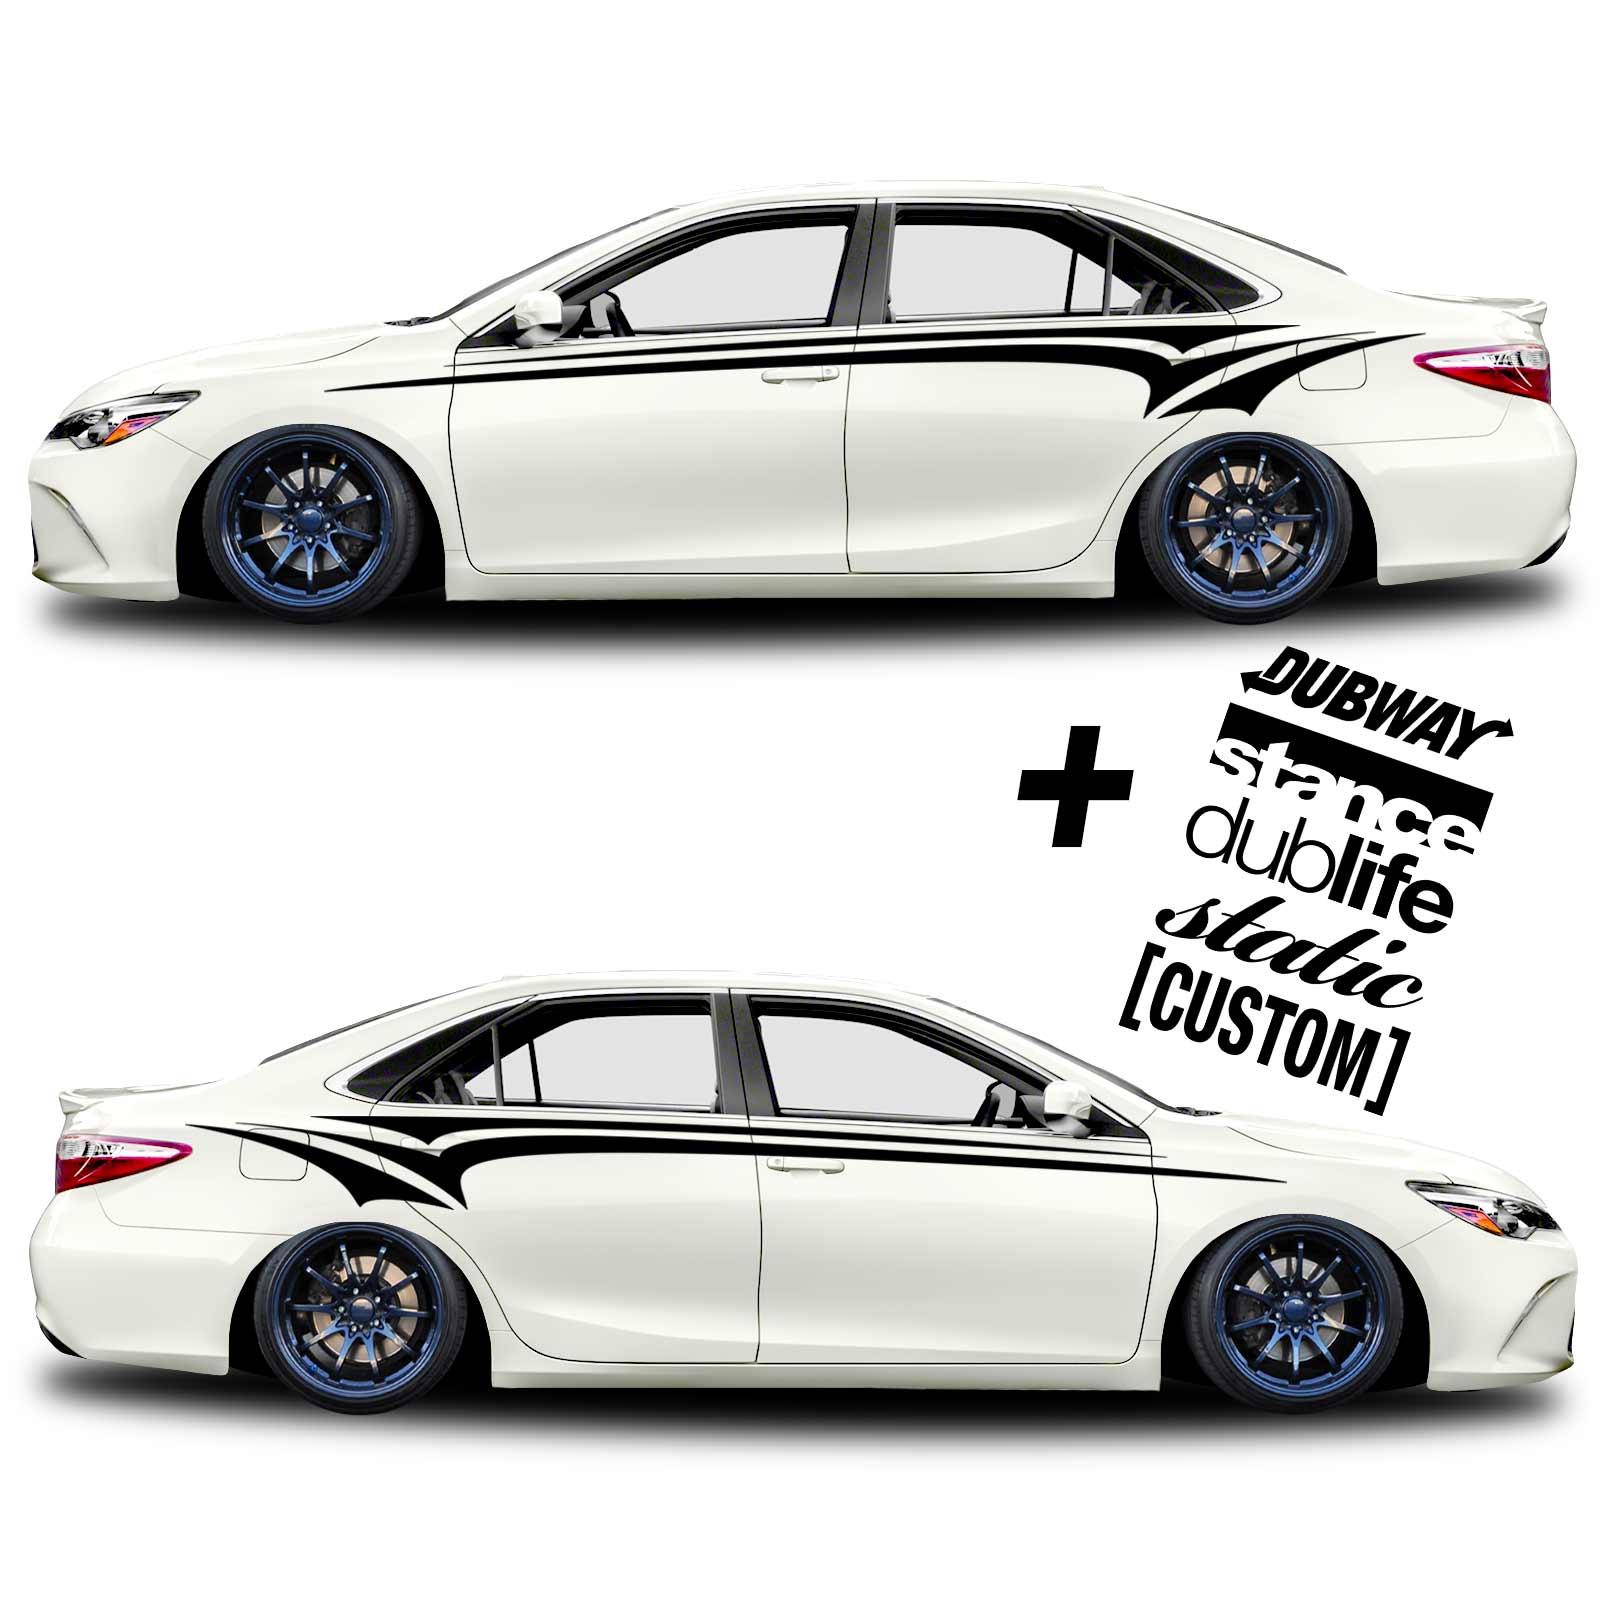 Car Decal Graphics Custom Vinyl Decals - Auto decals and graphics